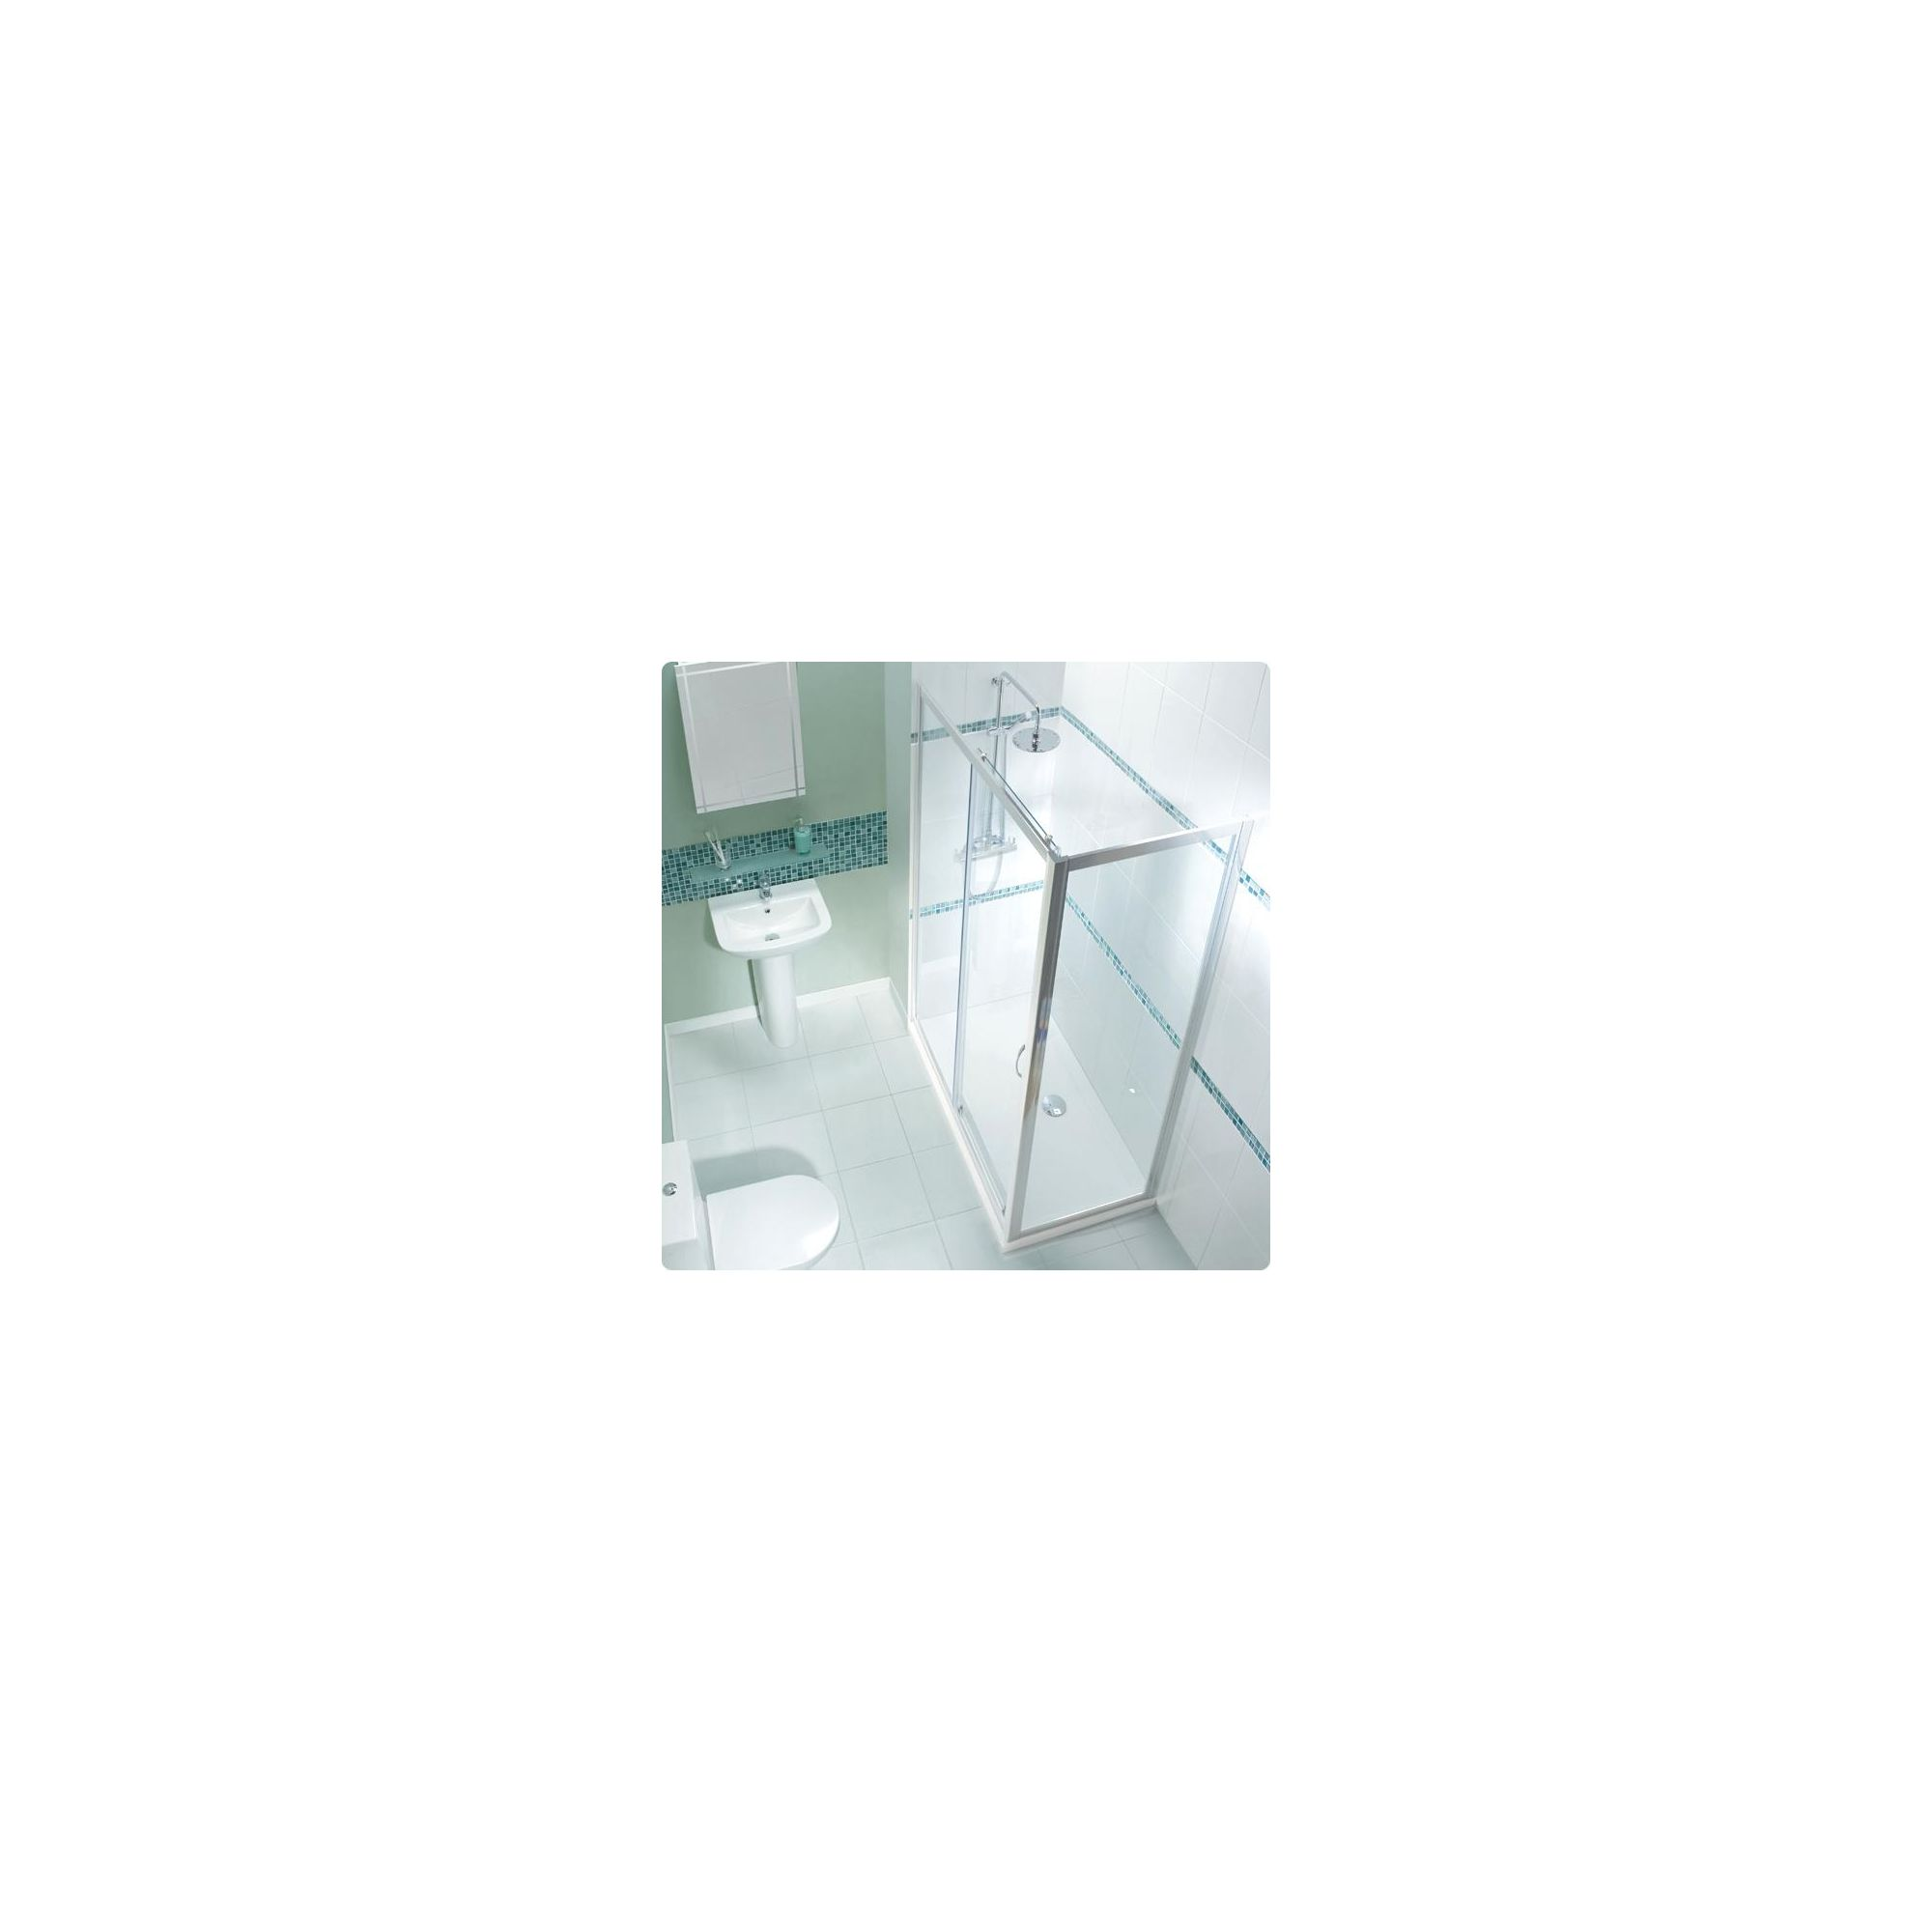 Balterley Framed Sliding Shower Enclosure, 1200mm x 760mm, Low Profile Tray, 6mm Glass at Tesco Direct